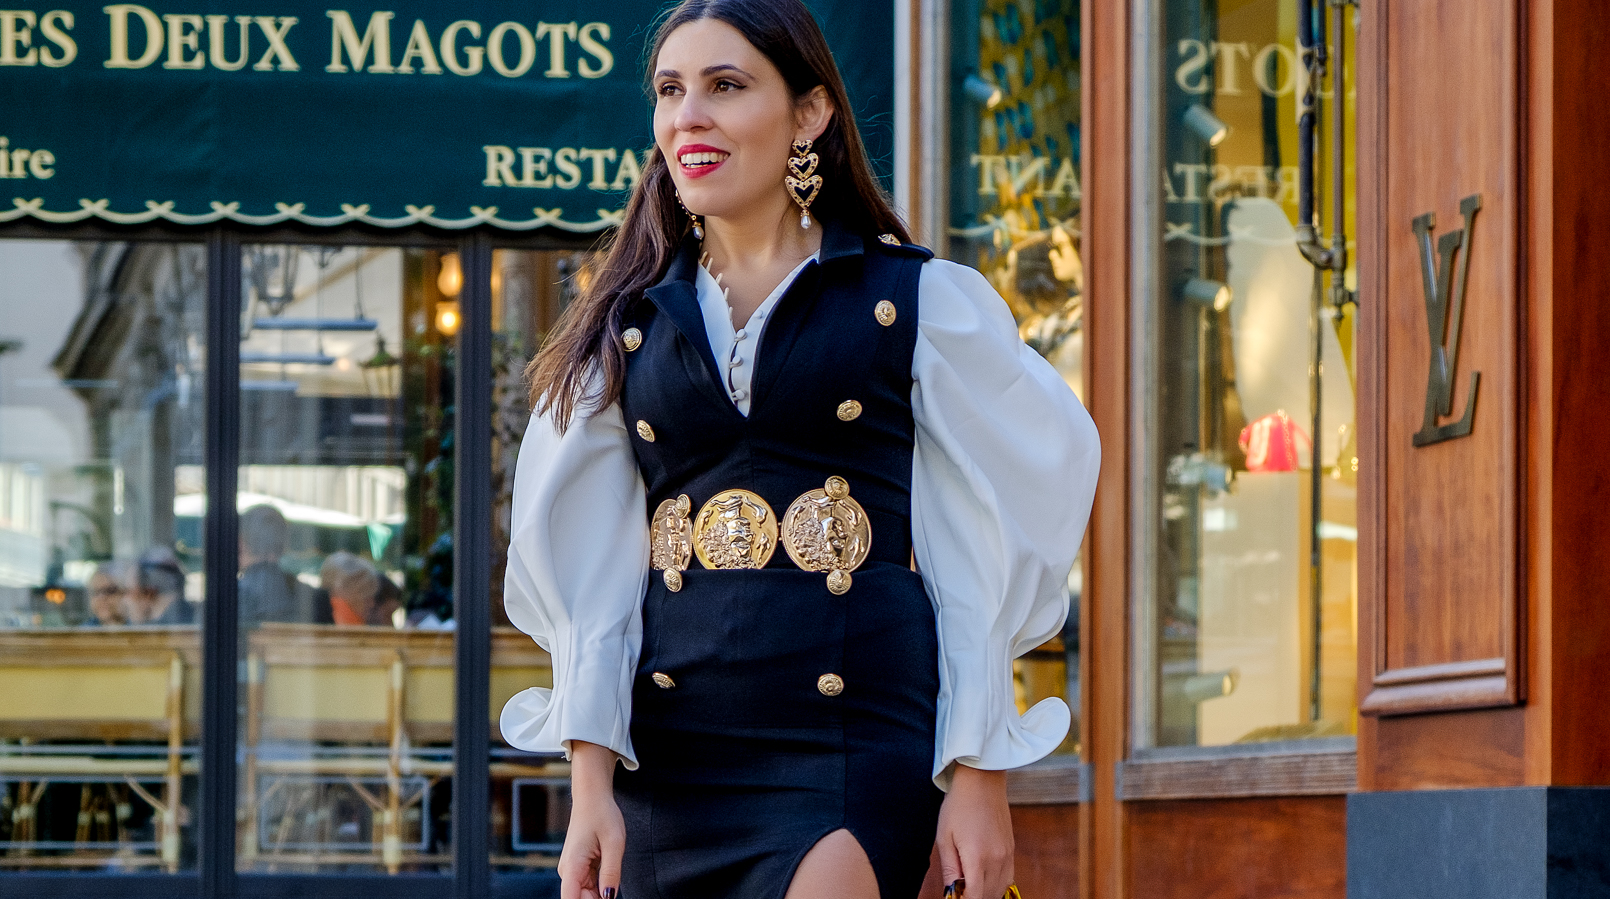 Le Fashionaire PFW Valentin Yudashkin SS19: my look and everything about the show white bold shaken sleeve oh hey girl black dress military golden buttons boohoo bold hearts black earrings zara gold coins bold boohoo belt 9268F EN